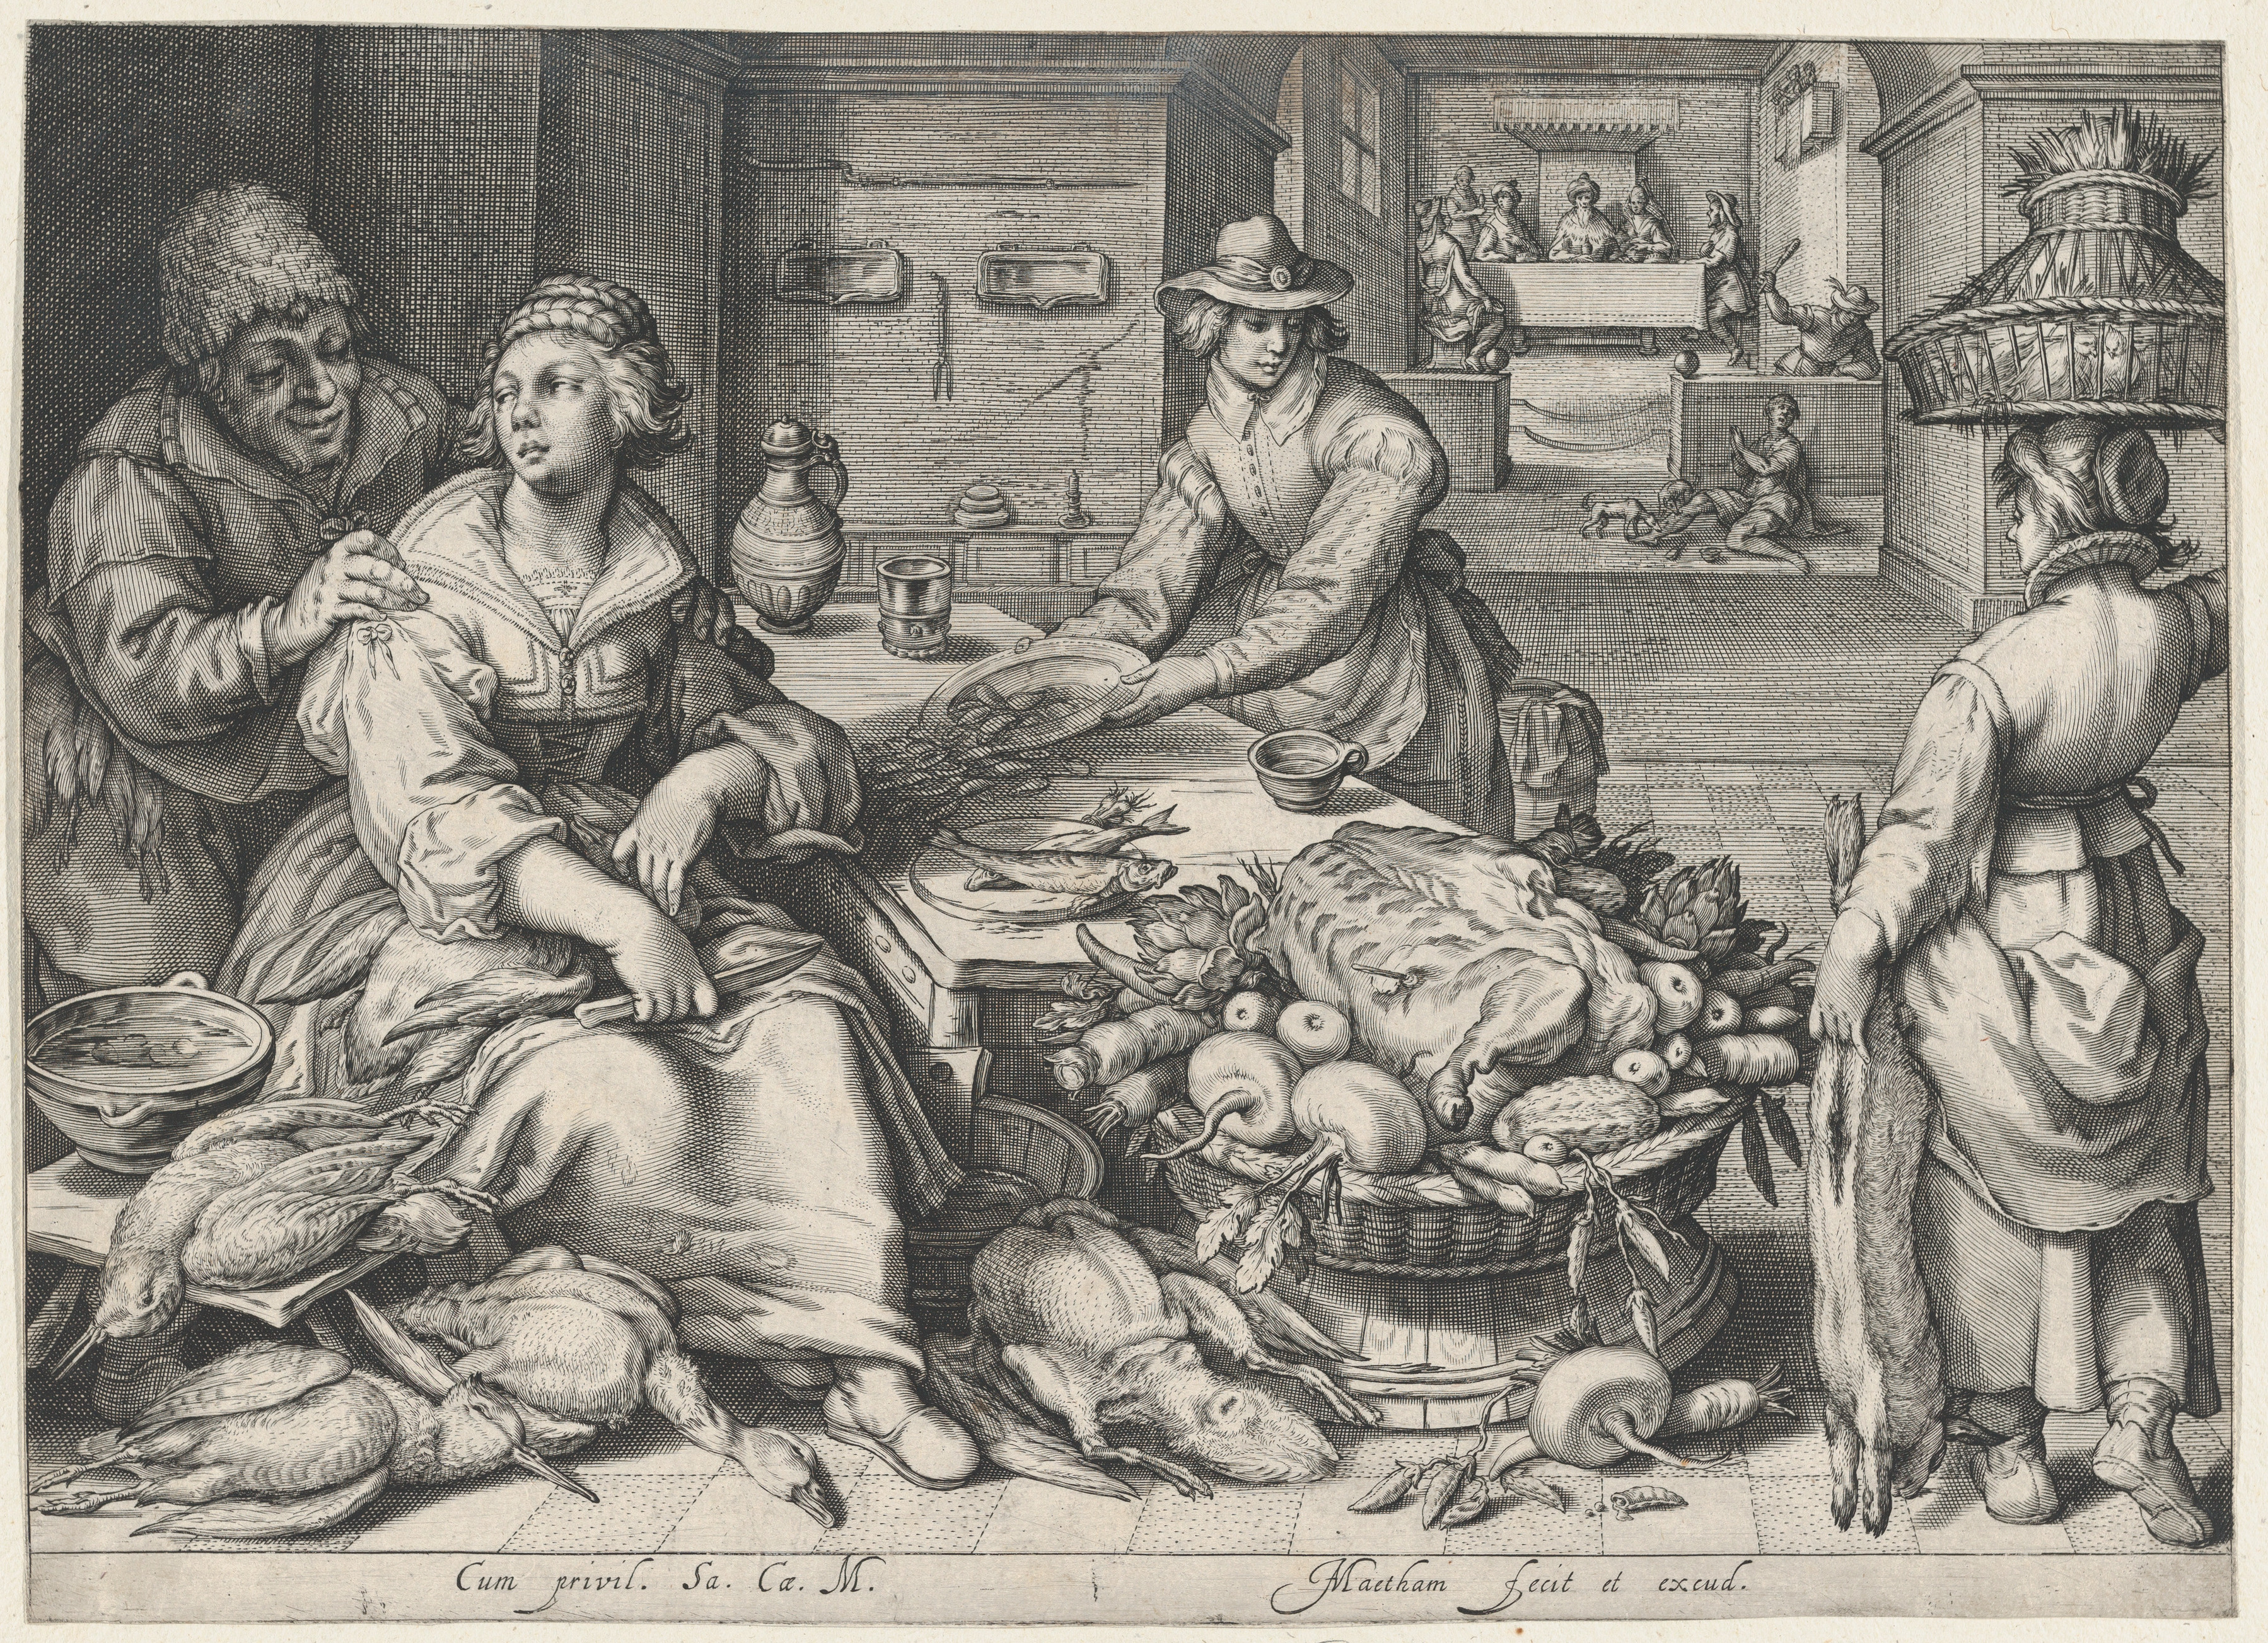 3597x2606 Filekitchen Scene With A Maid Drawing Poultry, Parable